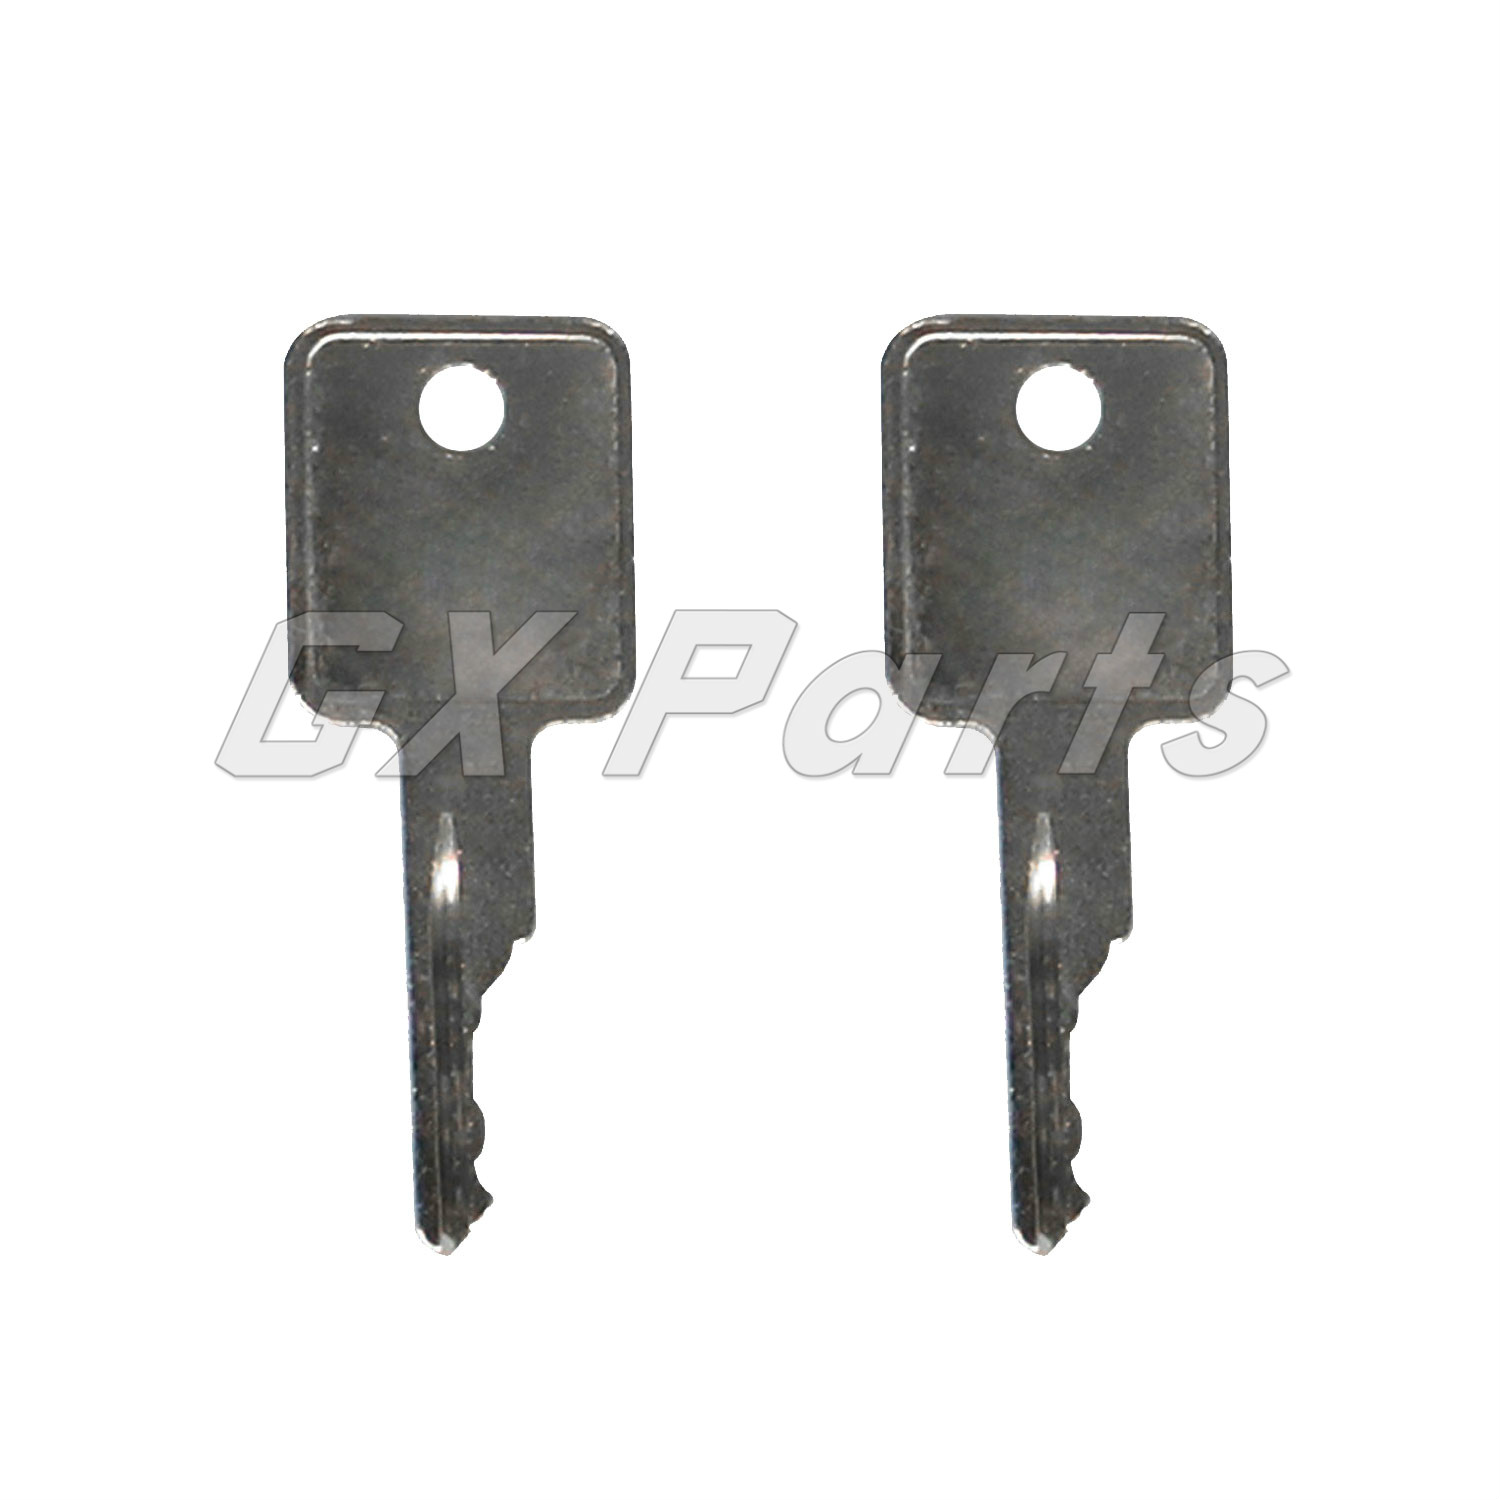 2 PCS Compatible with 6693241 Ignition Key For Bobcat S100 S130 S150 S160 S175 S185 S205 Skid Steer